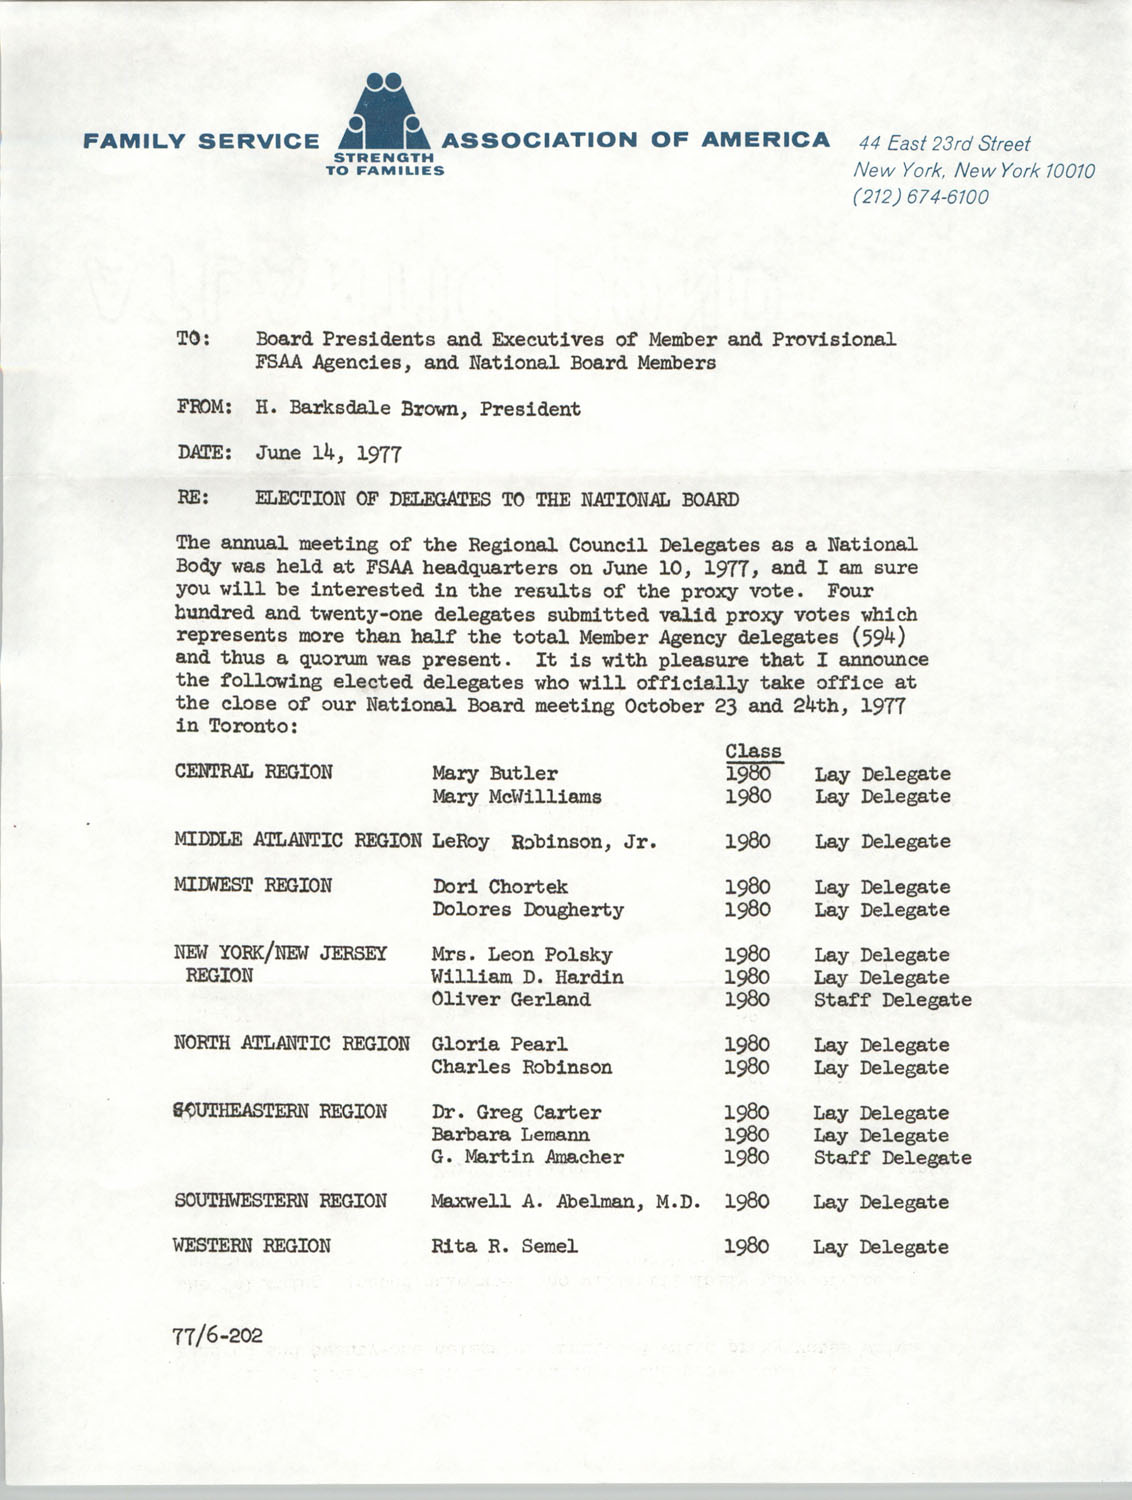 Memorandum from H. Barksdale Brown to Board Presidents and Executives of Member and Provisional FSAA Agencies, and National Board Members, June 14, 1977